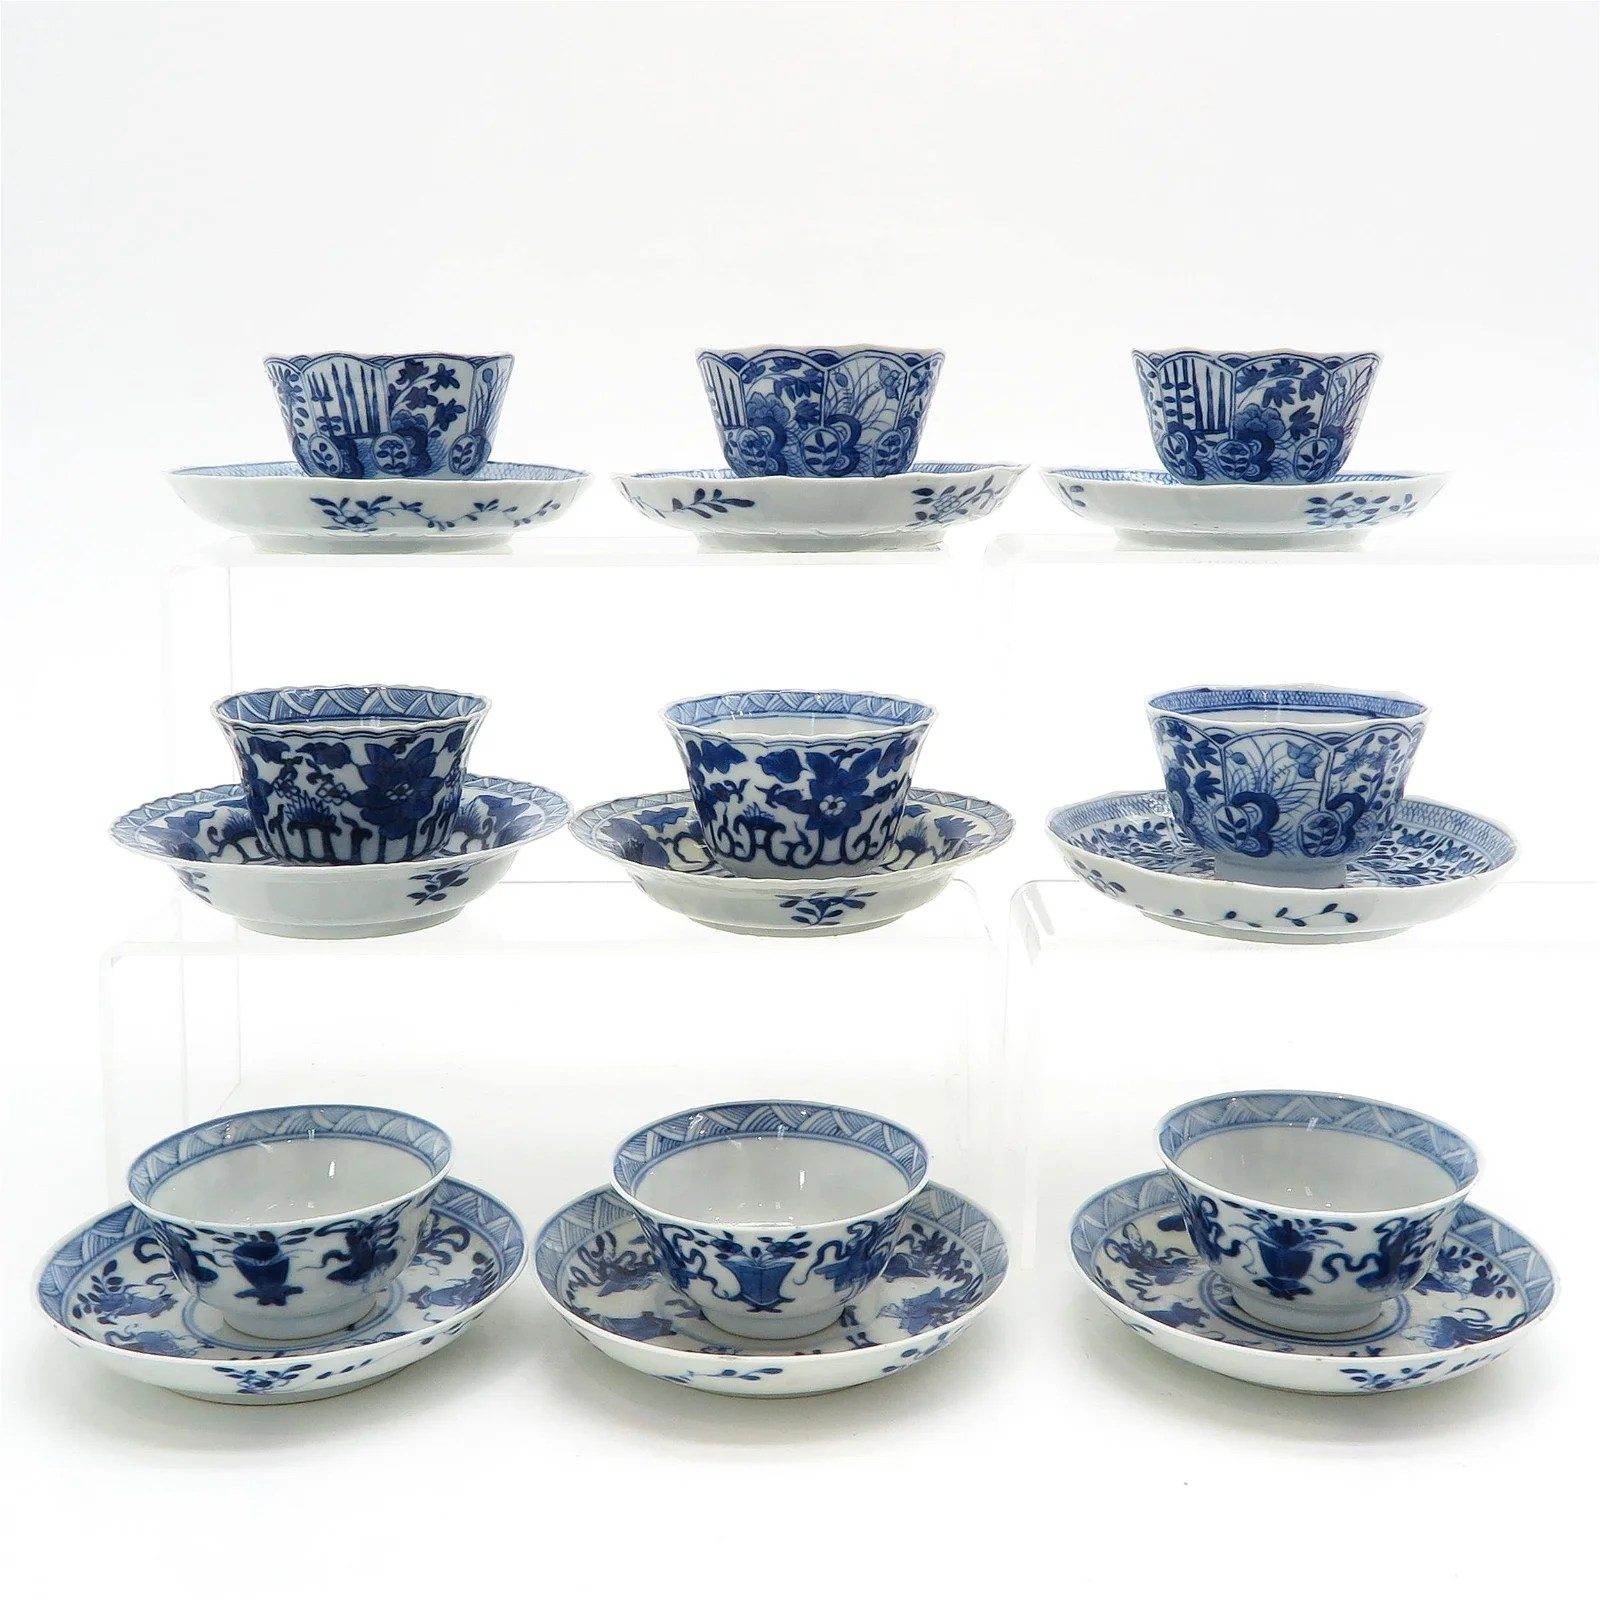 A Diverse Collection of Chinese Cups and Saucers